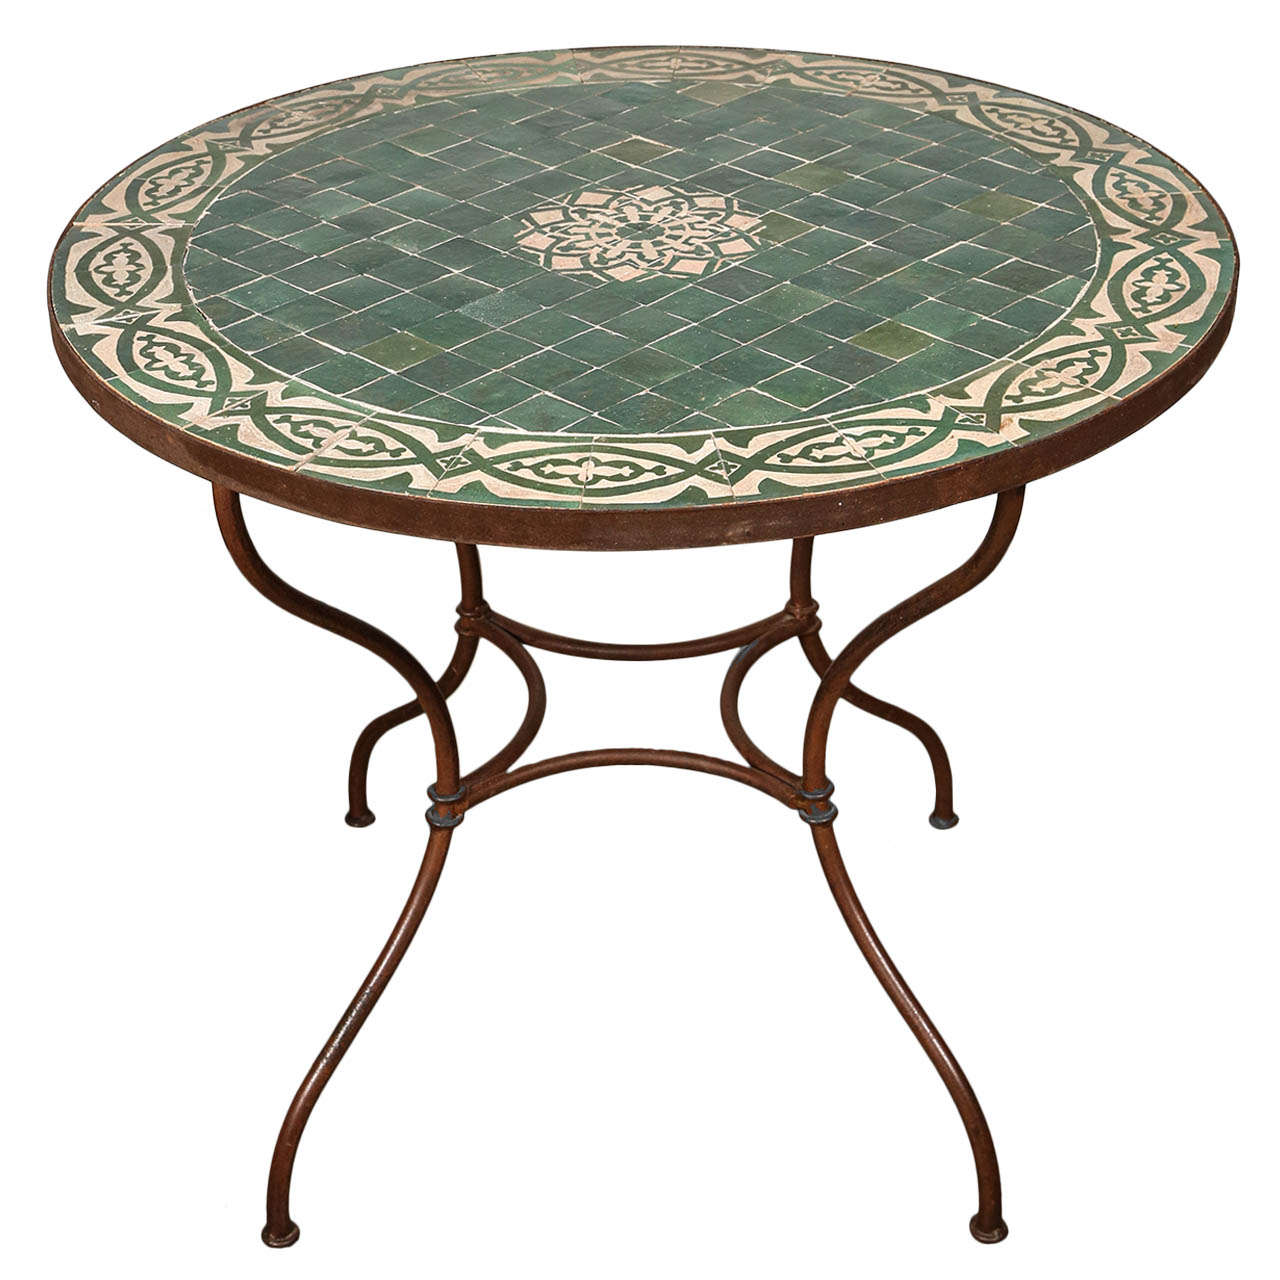 moroccan mosaic tile table top at 1stdibs. Black Bedroom Furniture Sets. Home Design Ideas